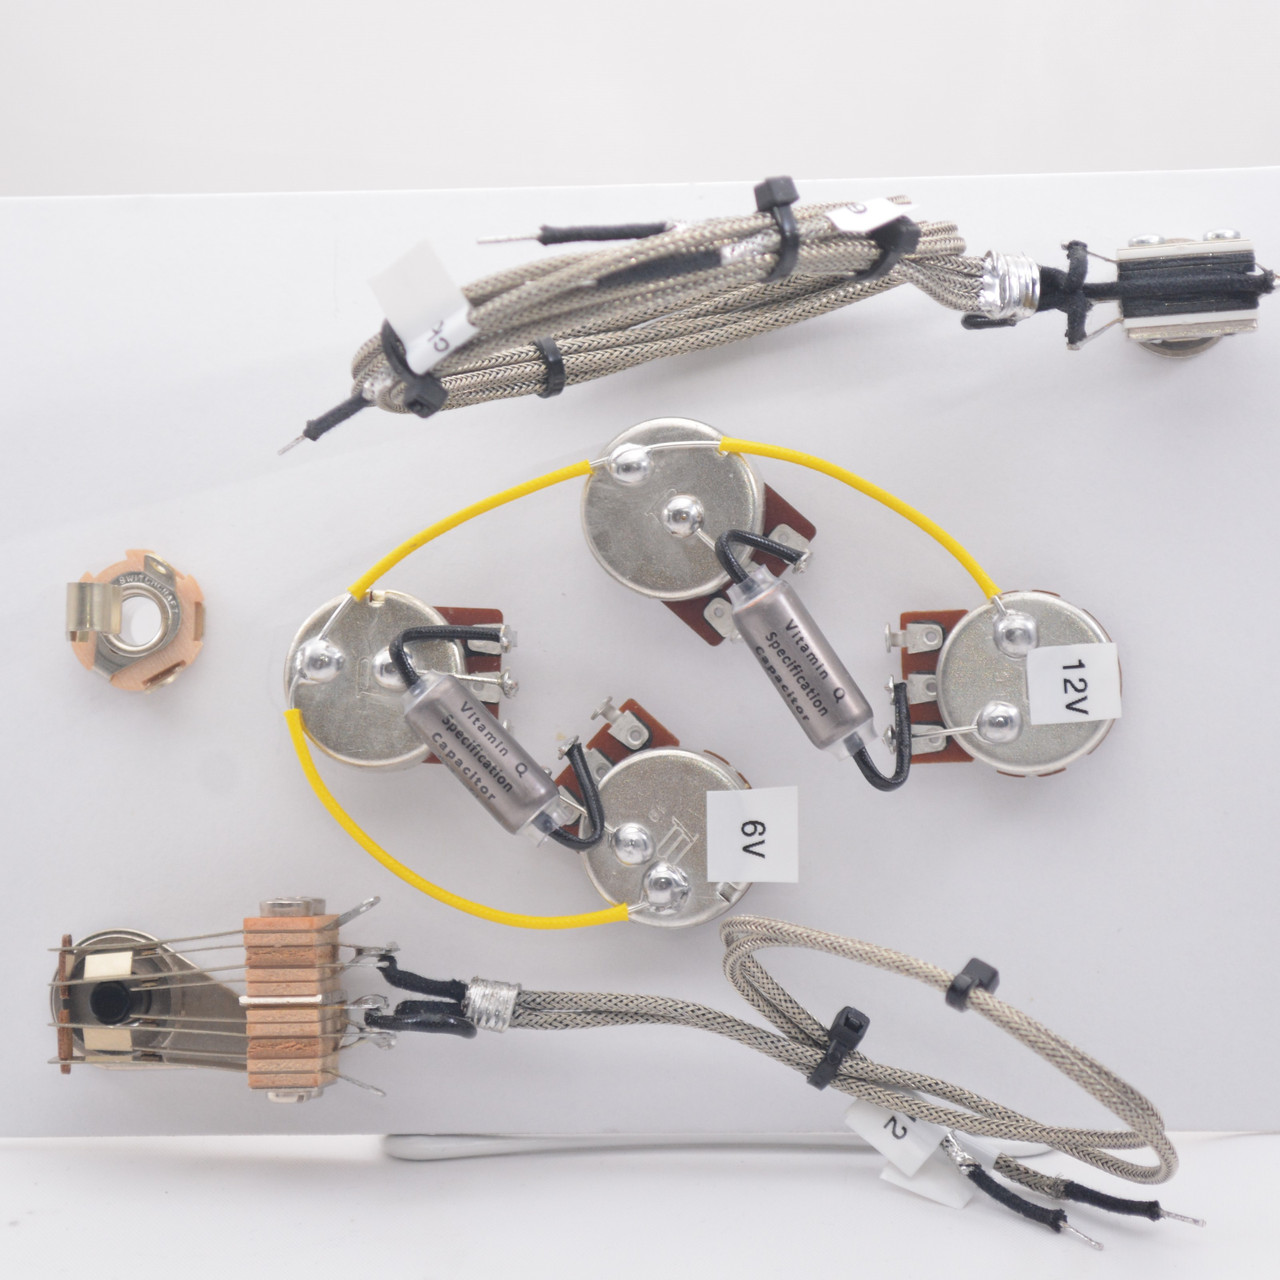 es335 wiring harness for epiphone for dot or sheraton 500k vitamin q .022uf  capacitors  jackson electronic luthier